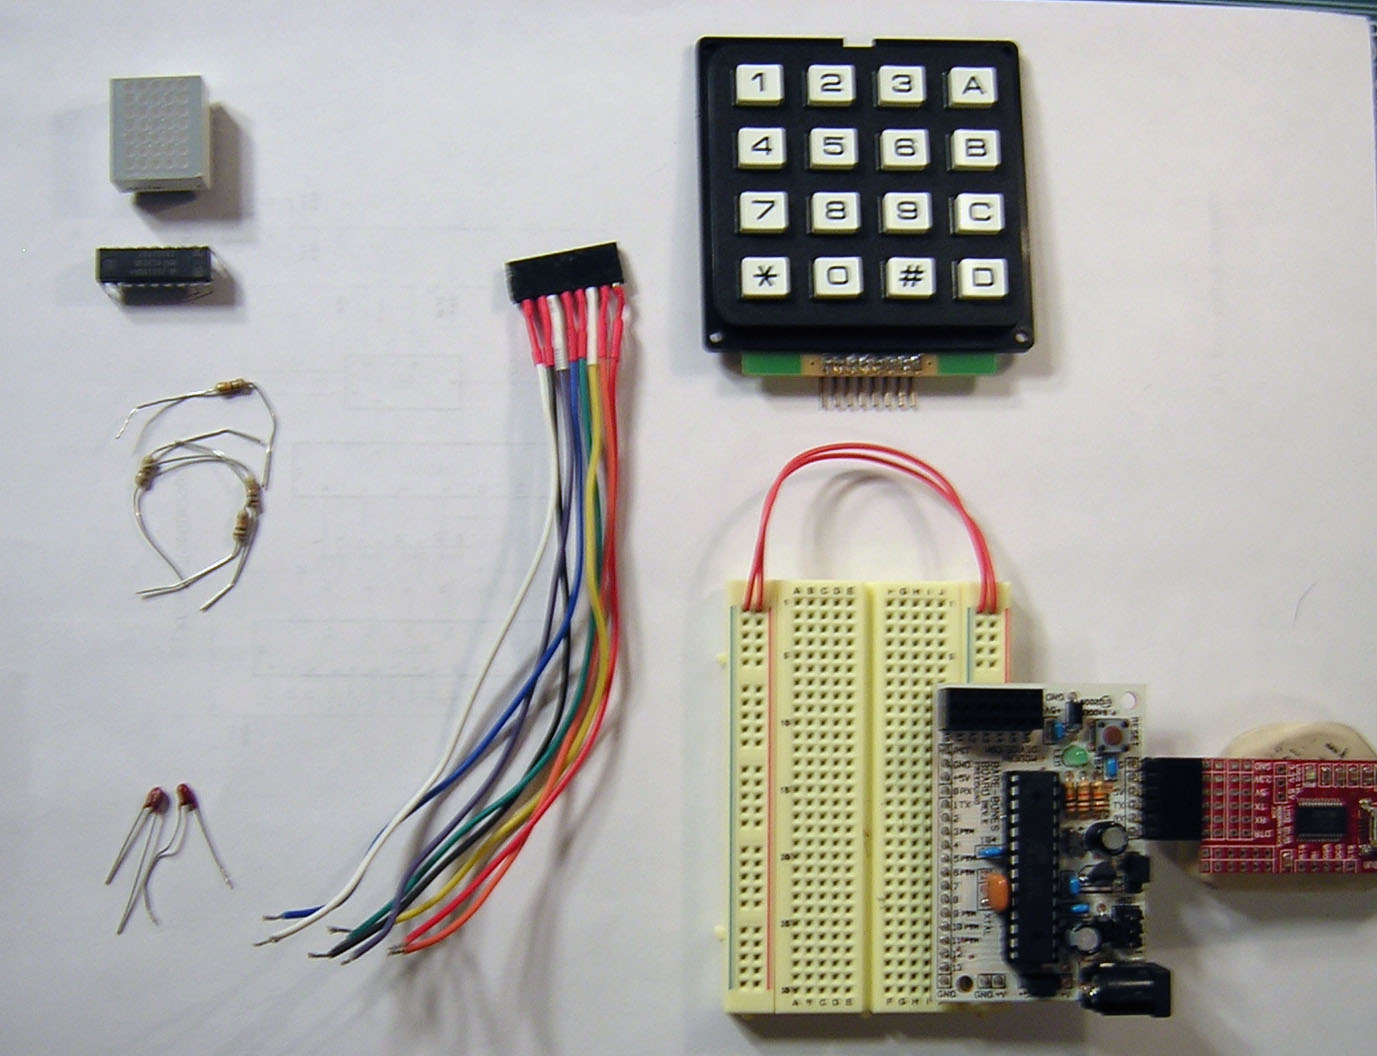 16-key Keypad Decoding with an AVR MCU